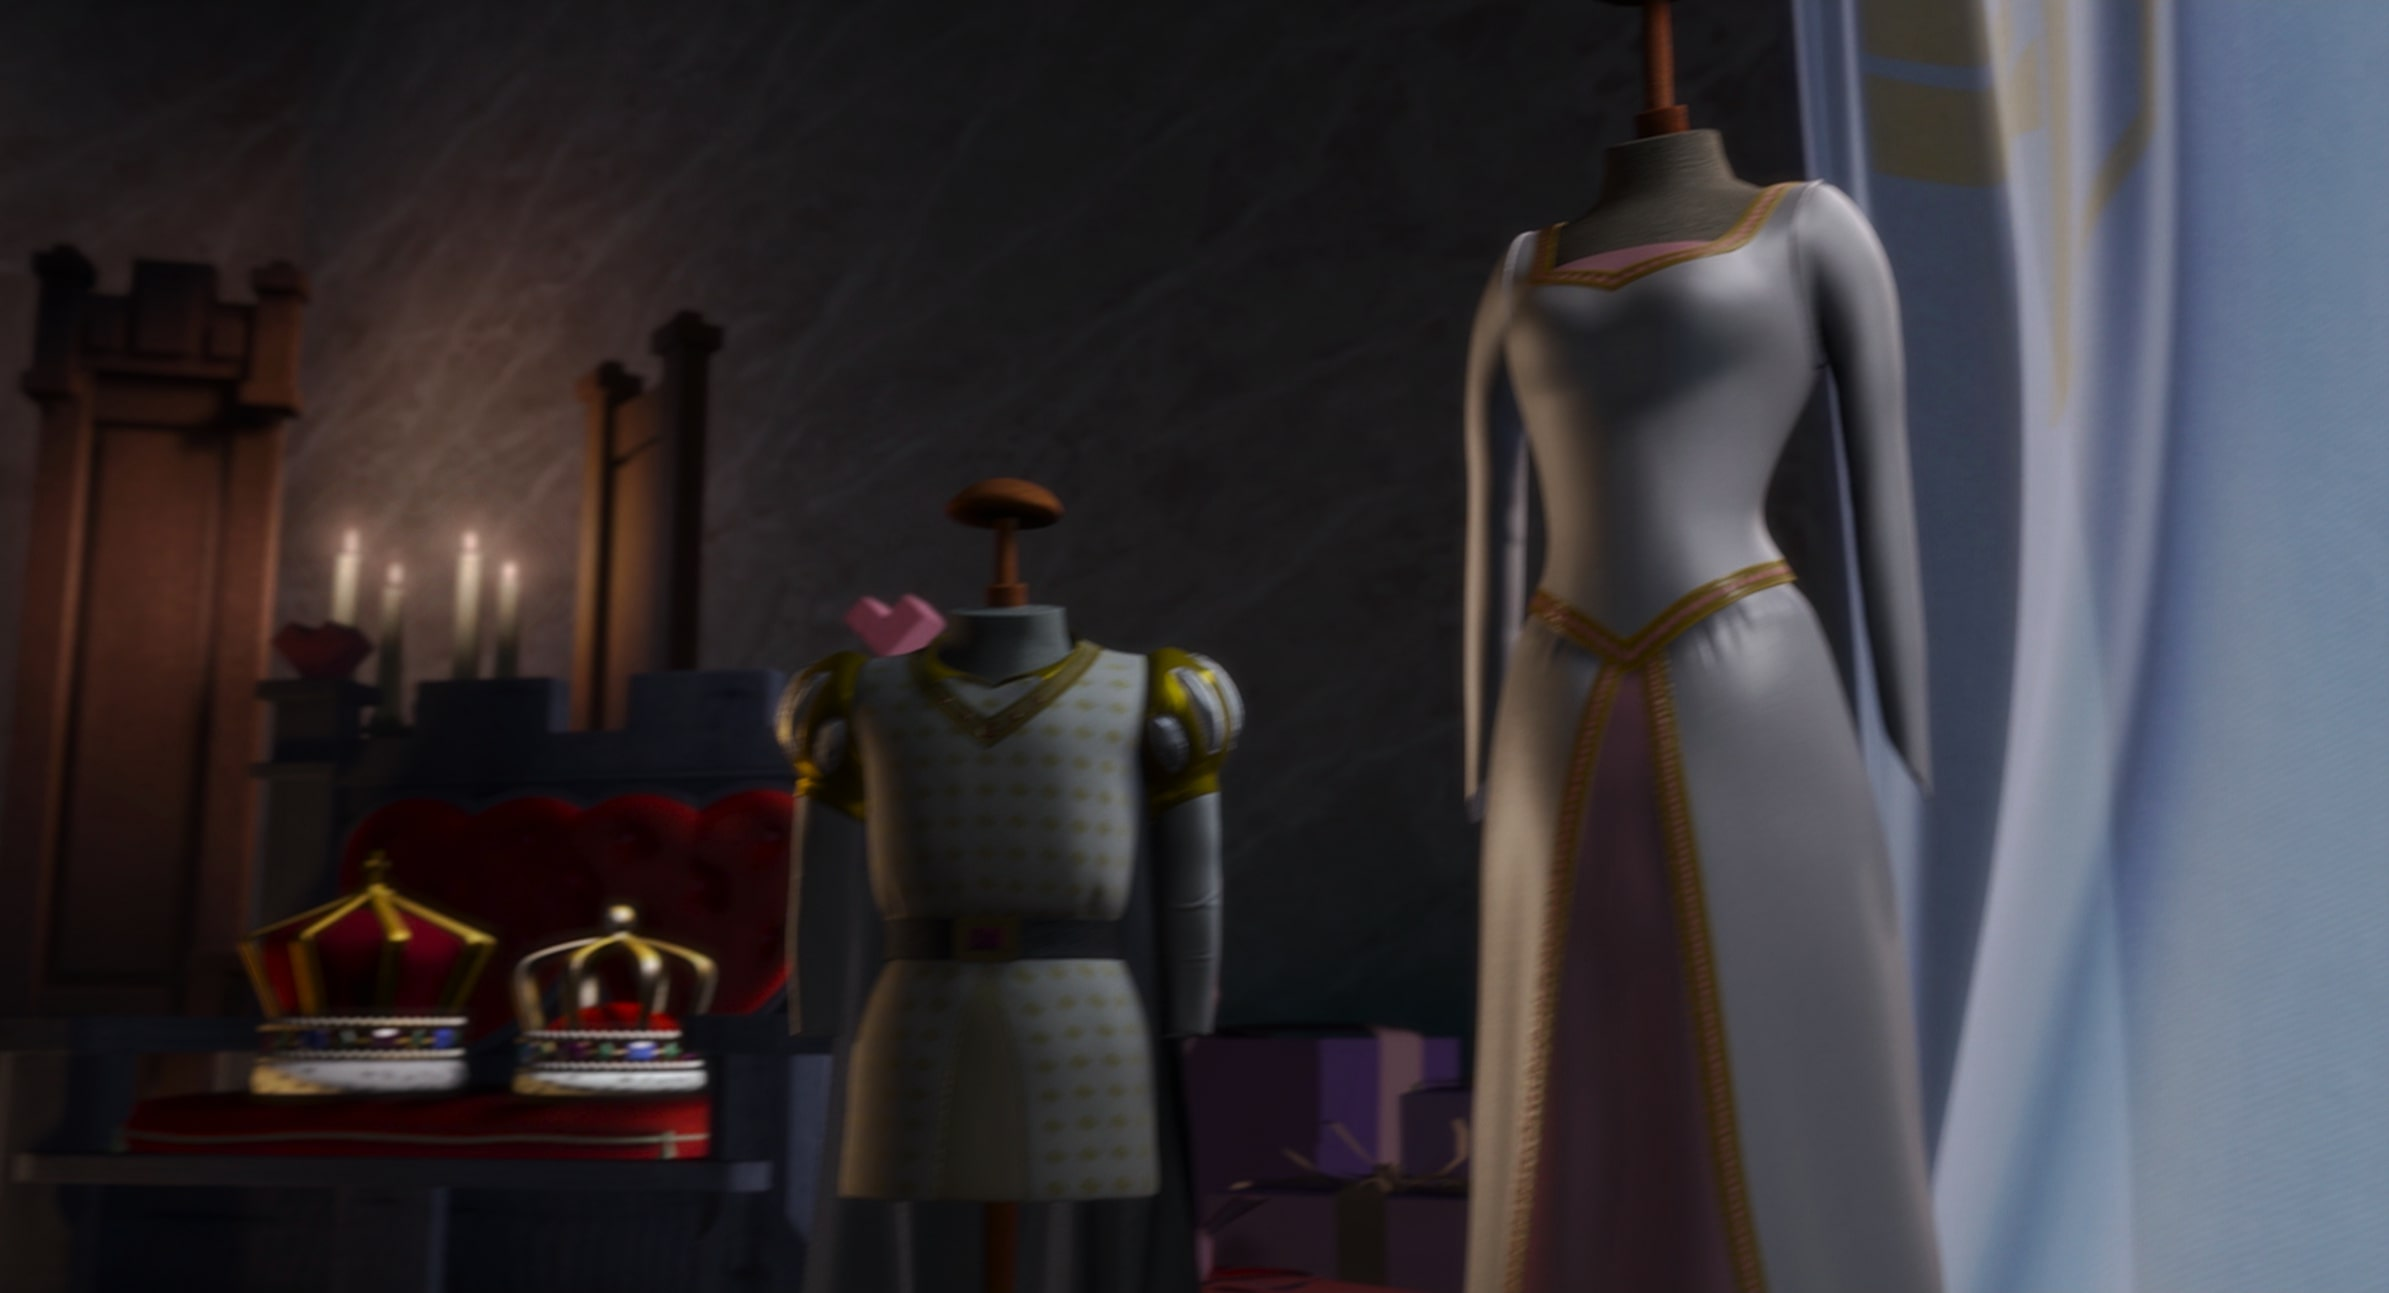 an analysis of the characters of shrek and lord farquaad from the movie shrek Donkey, shrek and dragon manage to save her and scare lord farquaad away, so the honeymoon could finally begin movie princess fiona princess fiona is the wife of shrek.